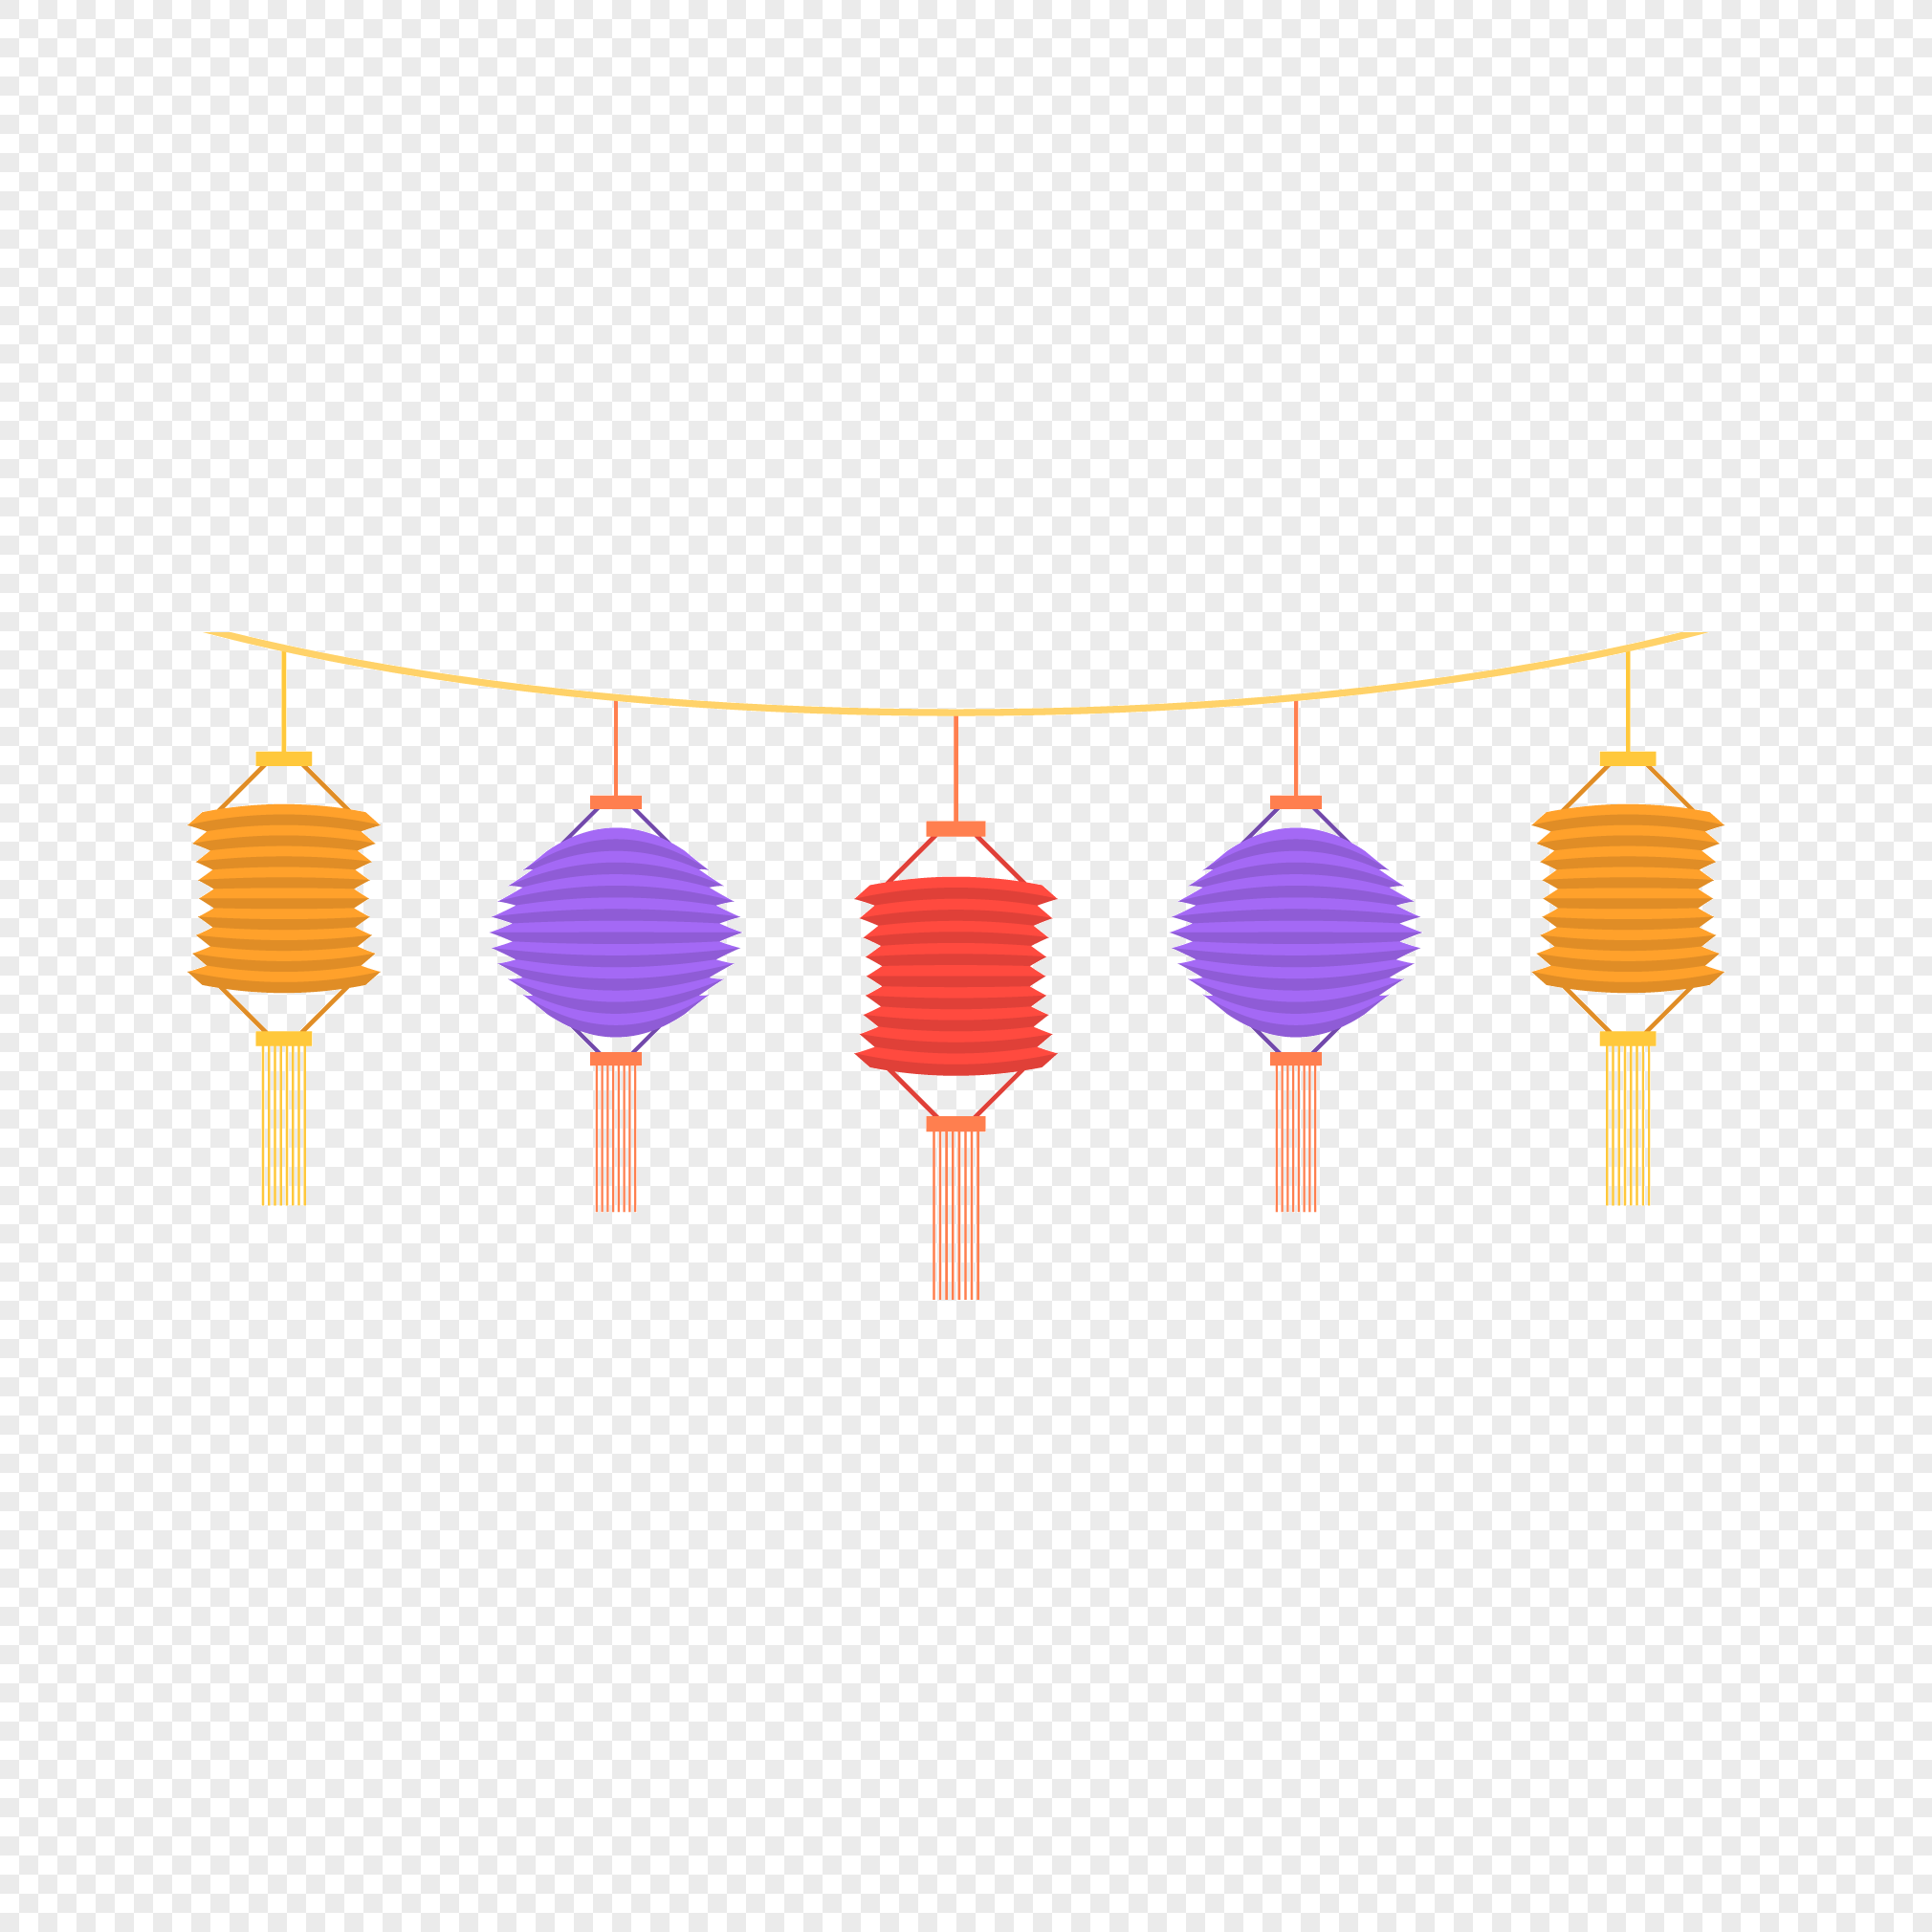 A Row Of Origami Lanterns Png Imagepicture Free Download